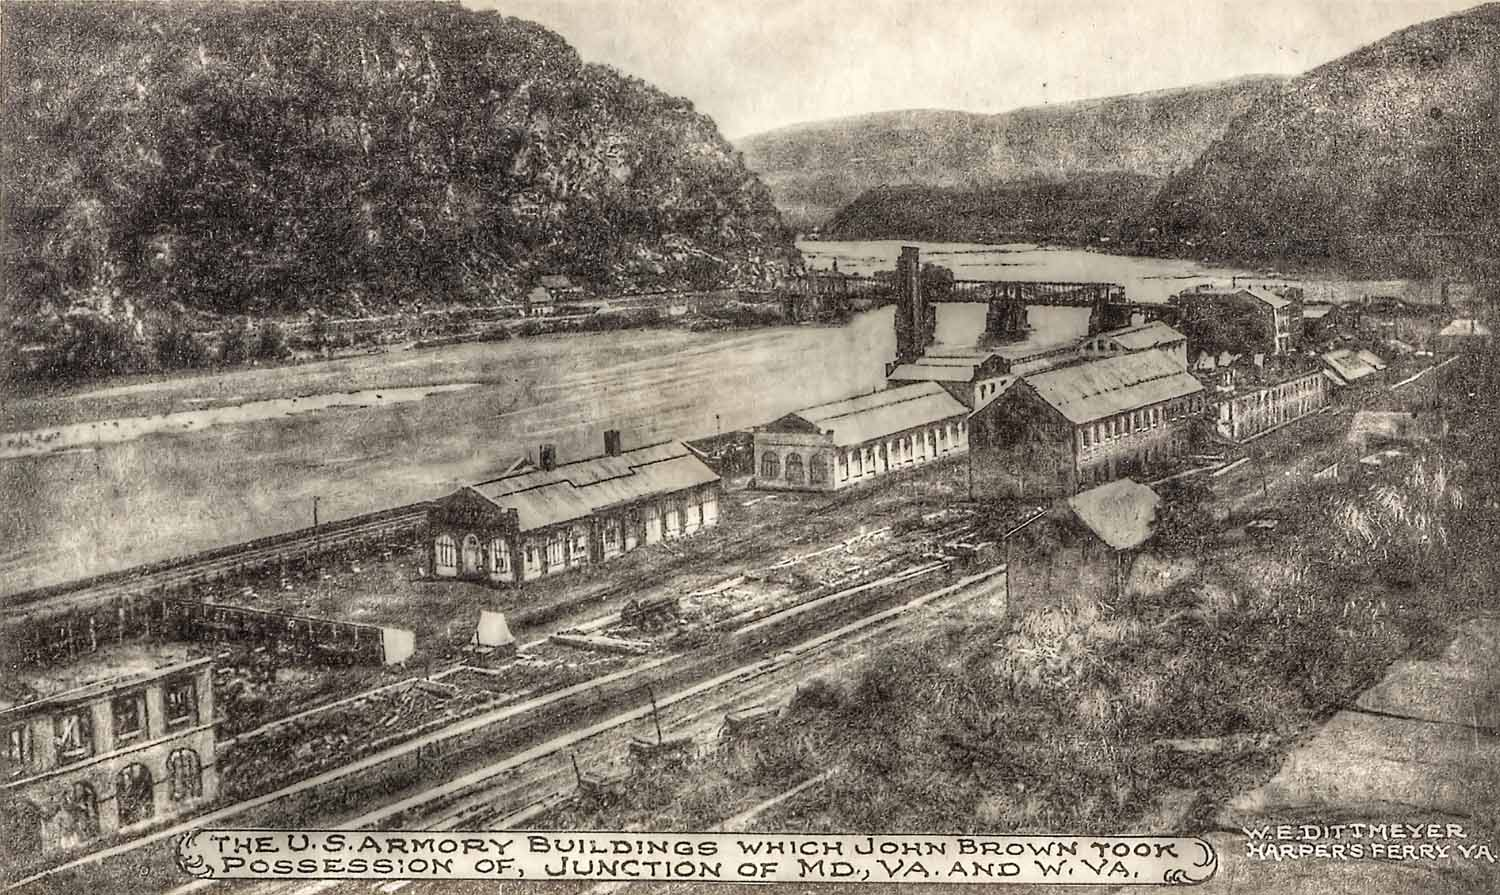 Depiction of some of the armory buildings. Courtesy of the Harpers Ferry-Bolivar Historic Town Foundation.